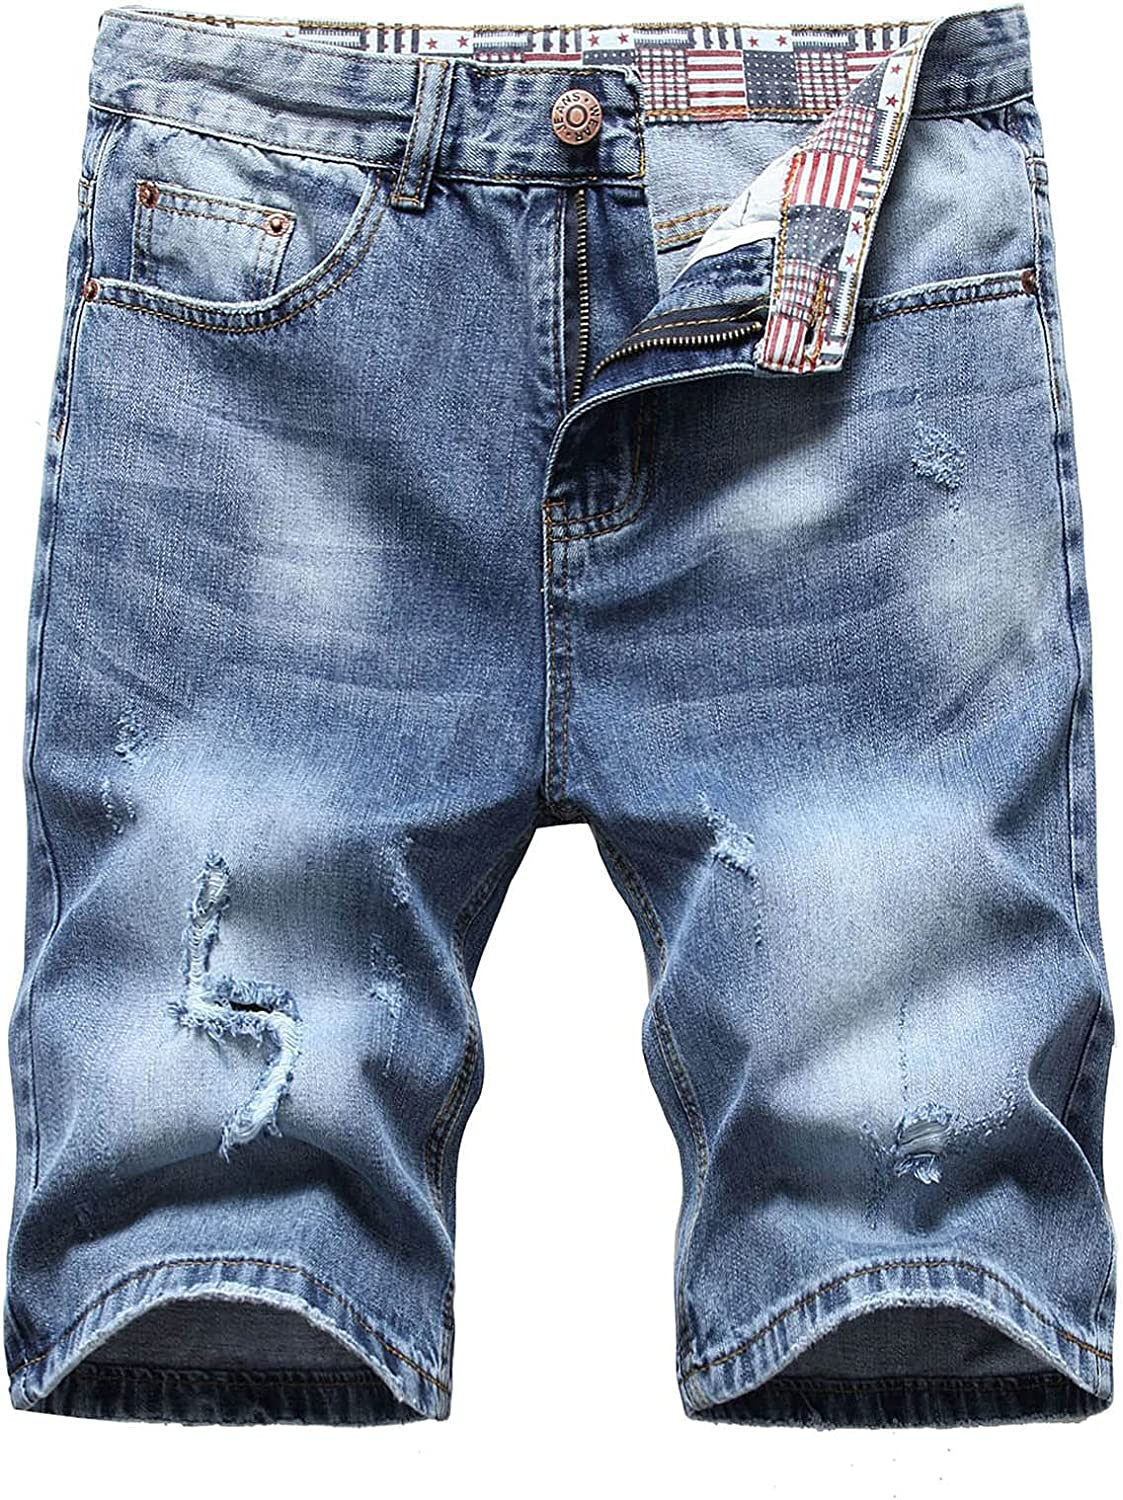 Burband Mens Jeans Shorts Ripped Distressed Denim Shorts Pants Casual Slim Fit Fashion Outdoor Lounge Stretchy Jeans